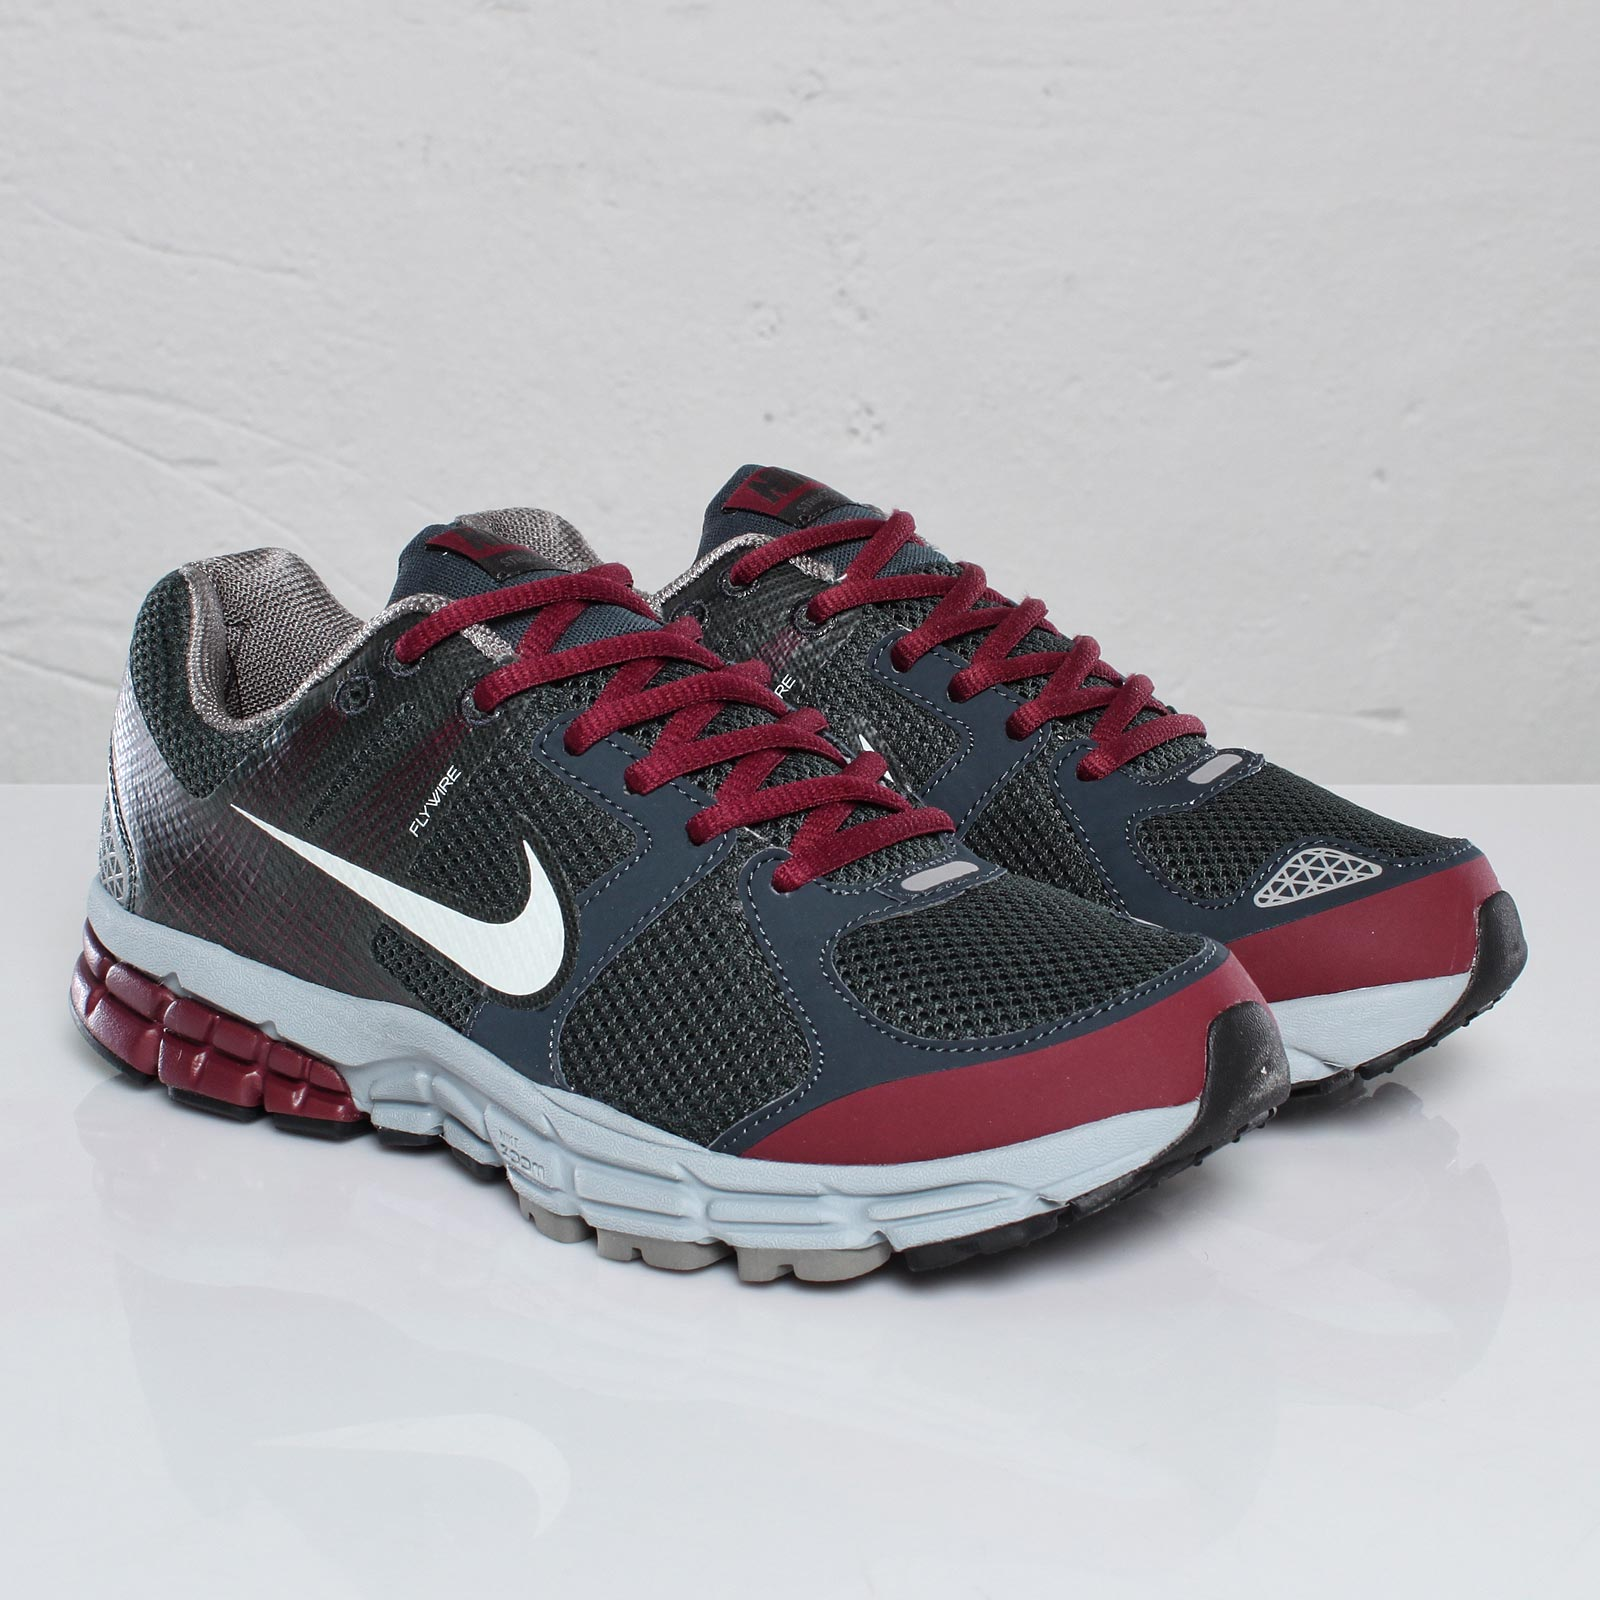 reputable site b9d5c 0a810 Nike Zoom Structure+ 15